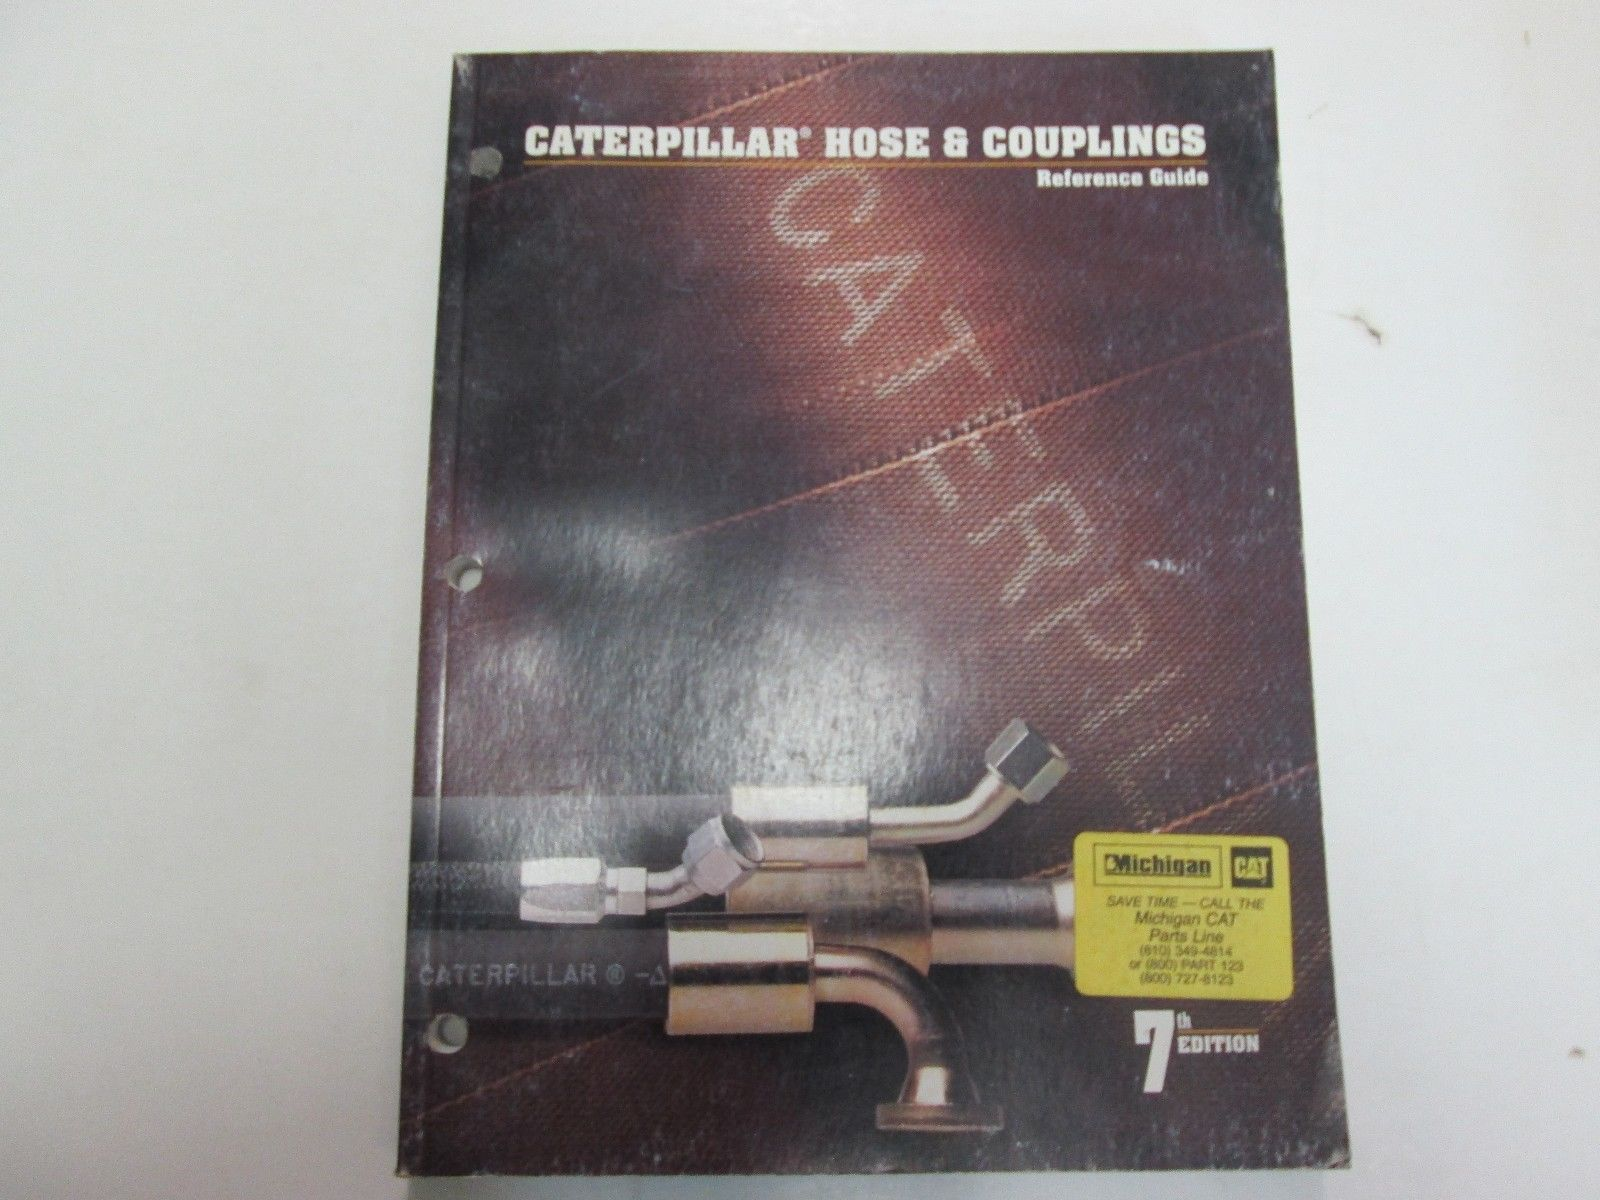 Caterpillar time guide requirements woolly bear caterpillar by sillyputtyenemies array caterpillar hose u0026 couplings reference guide and 50 similar items rh bonanza com fandeluxe Gallery